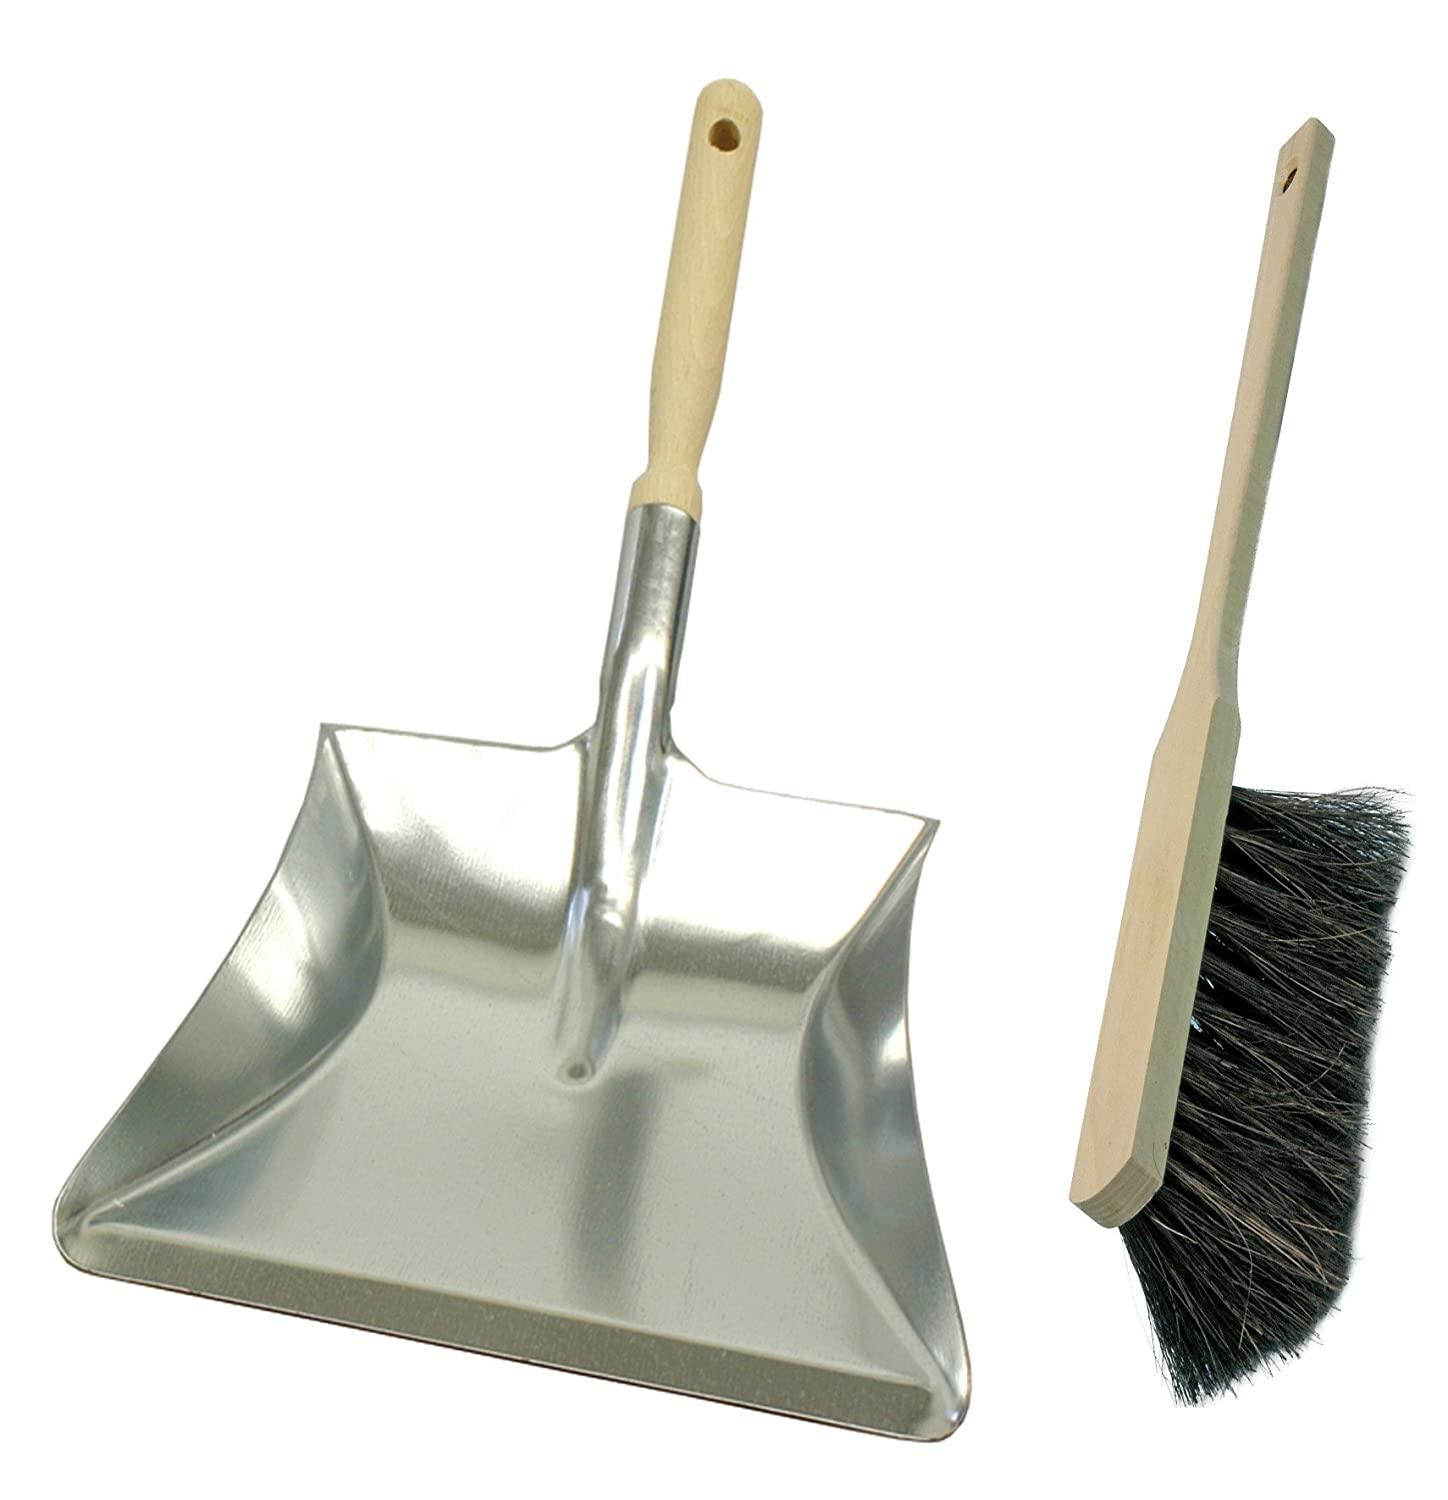 Brushmann Large Dustpan / Hand Shovel and Long Handled Hand Brush Set (Soft Bristle Long Handle, Large Pan)